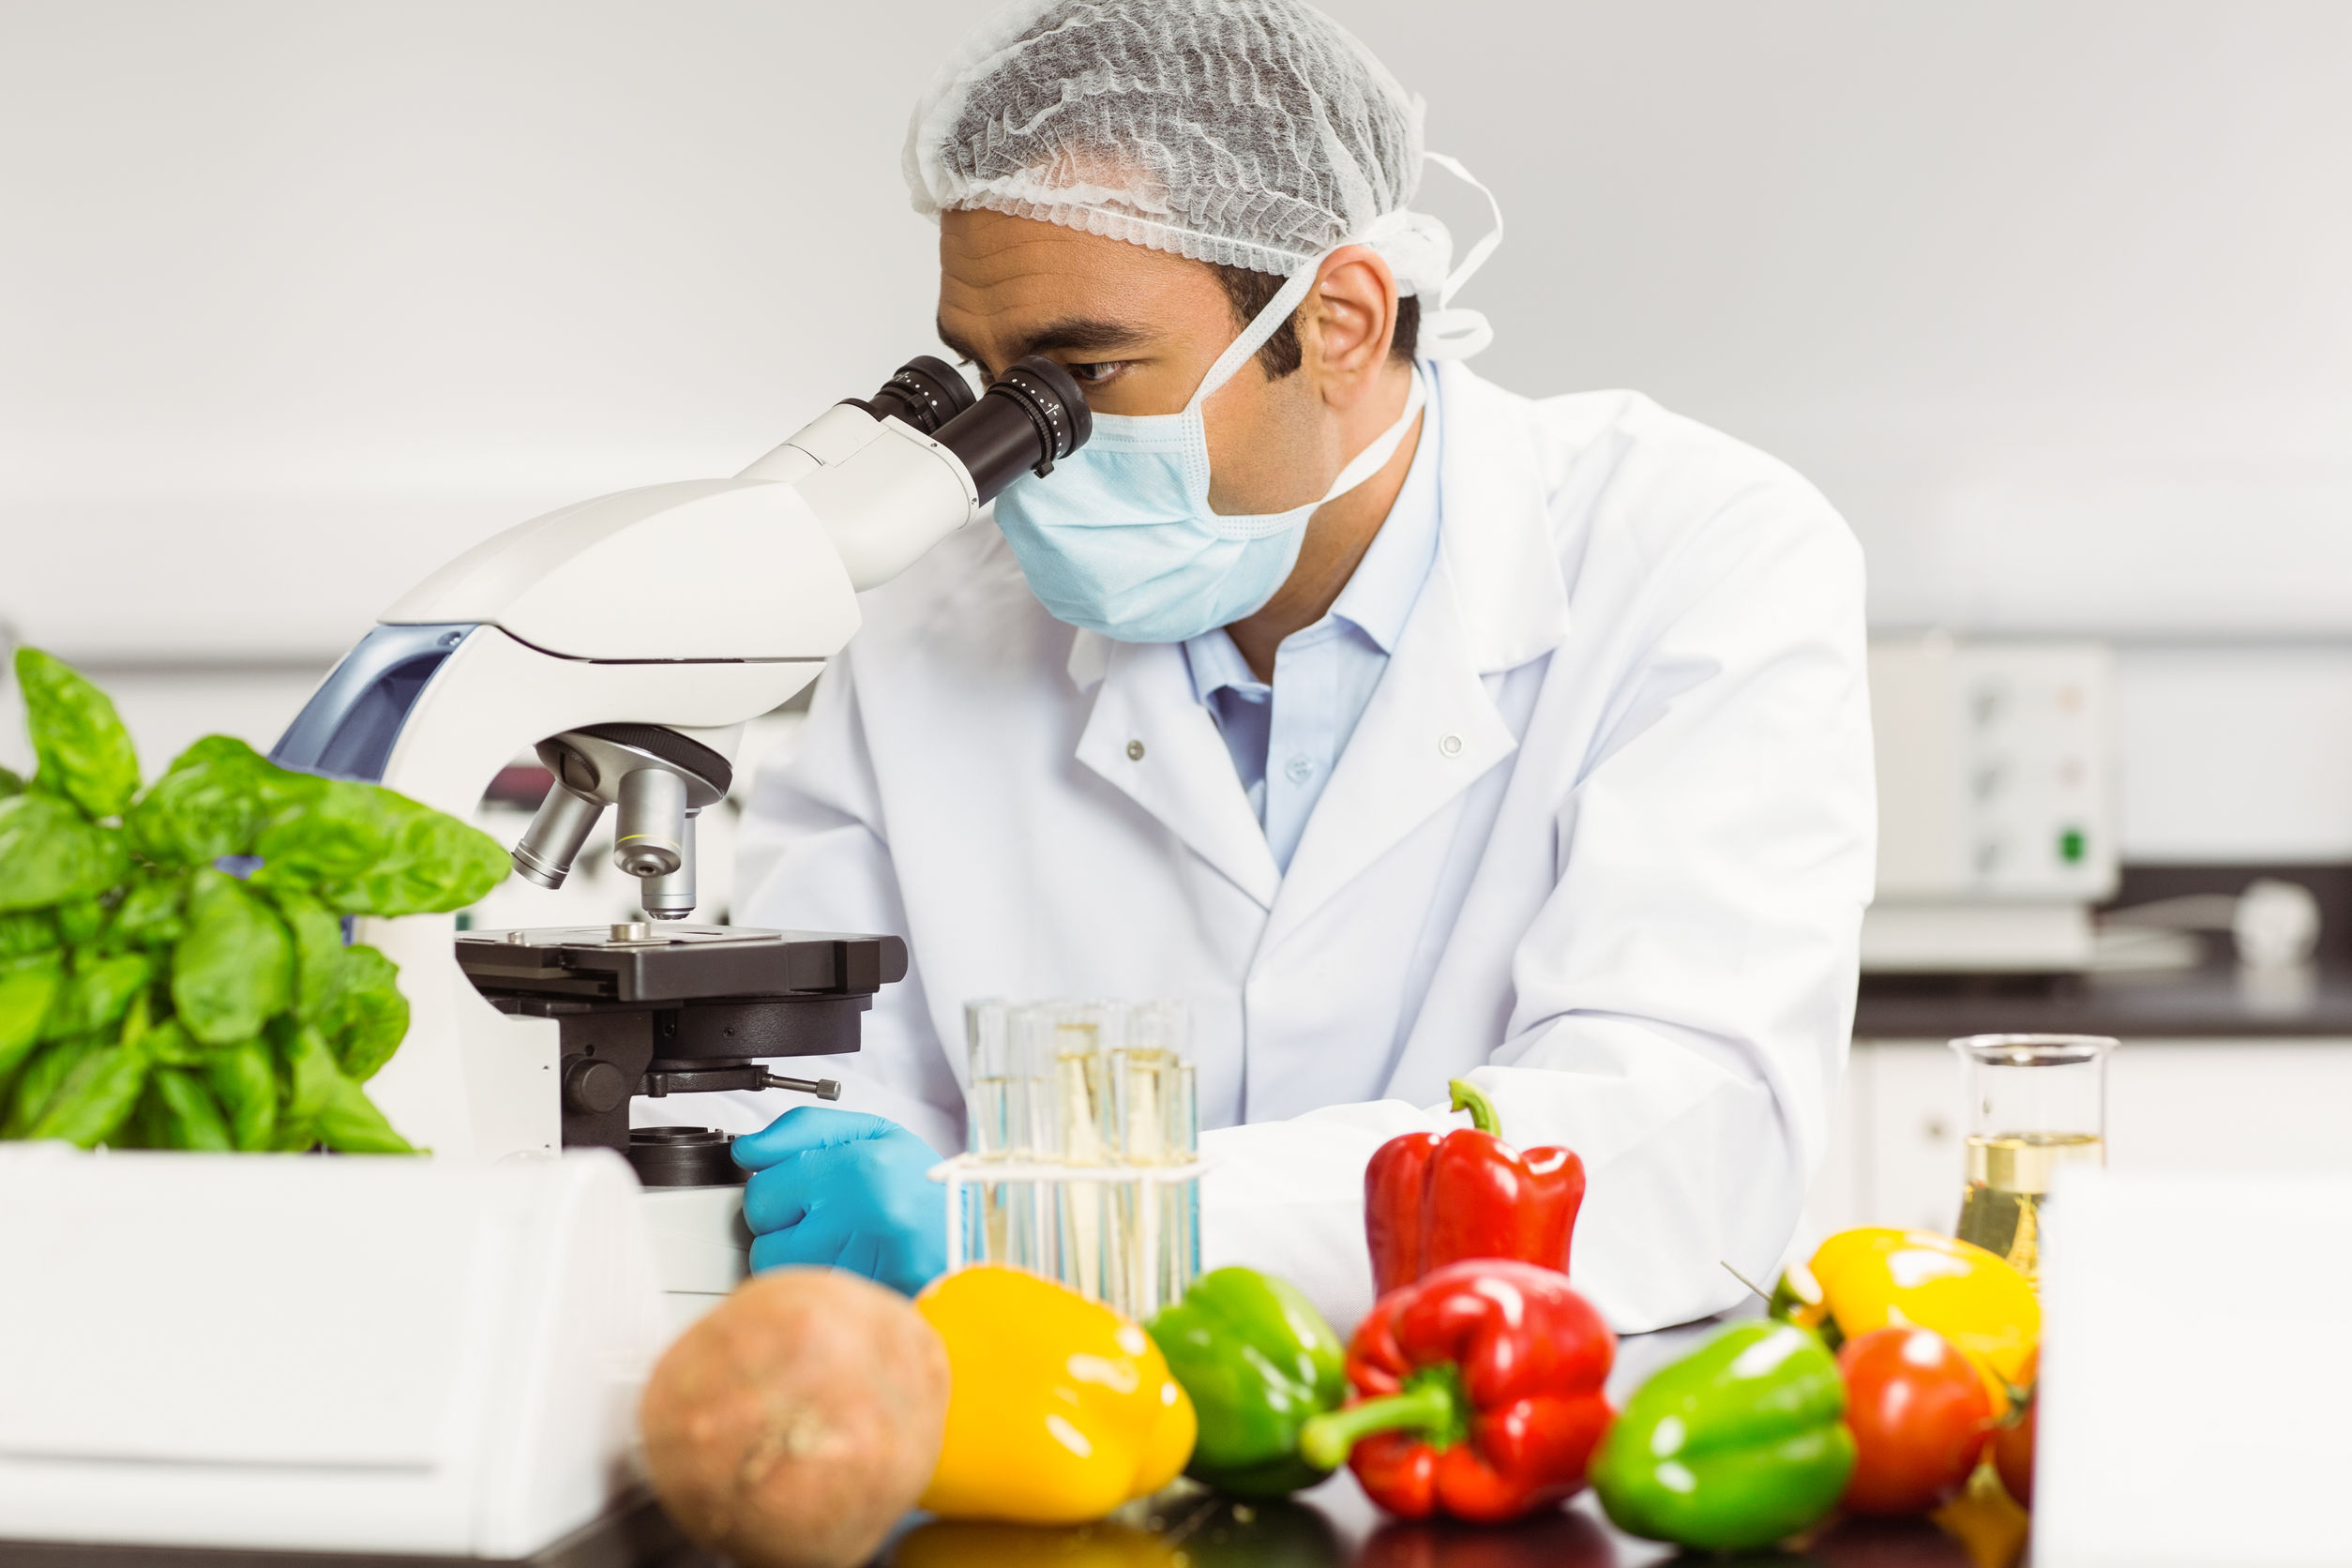 Food Safety Level 2 in Catering - e-Learning CPD